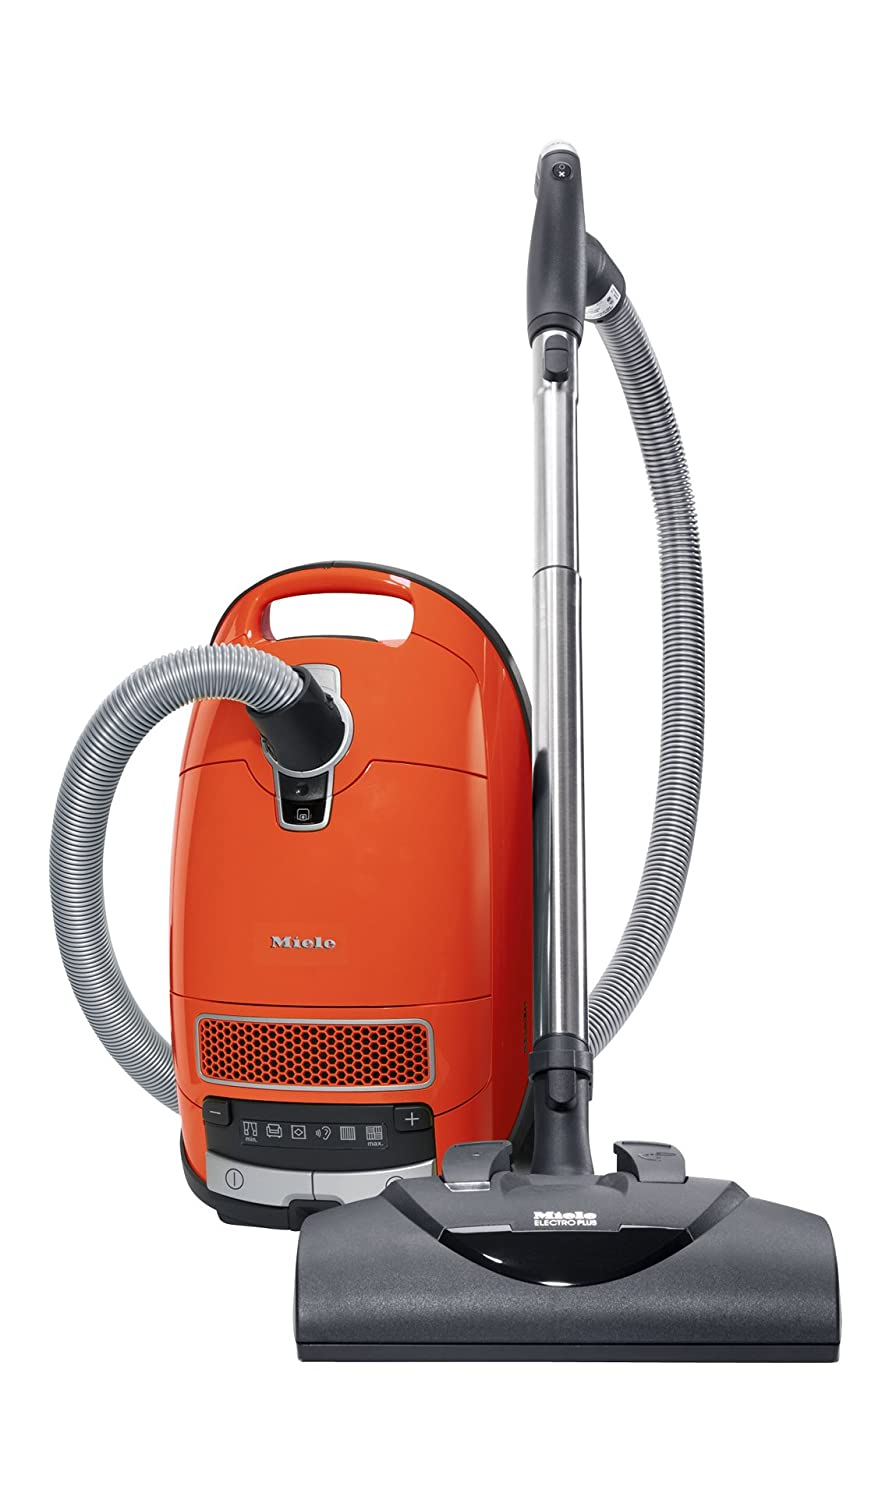 Miele S8380 Canister Vacuum Model